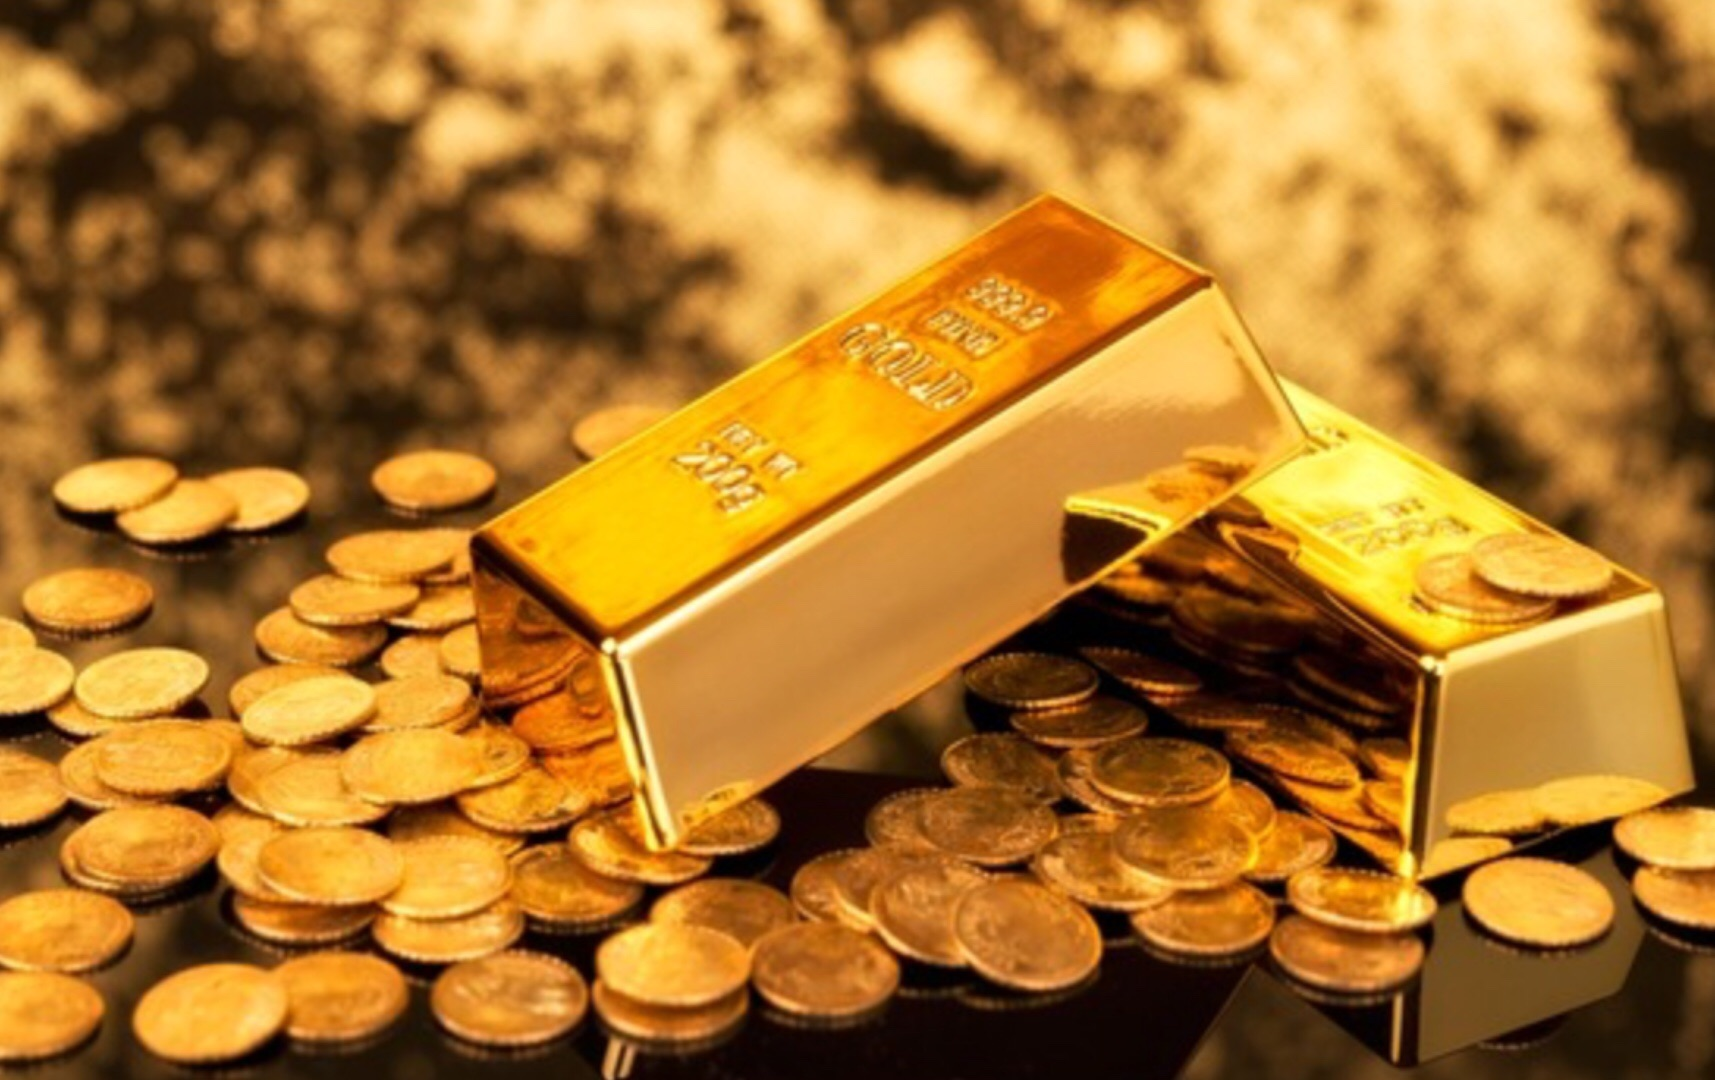 Peru is ranked as the sixth largest producer of gold.